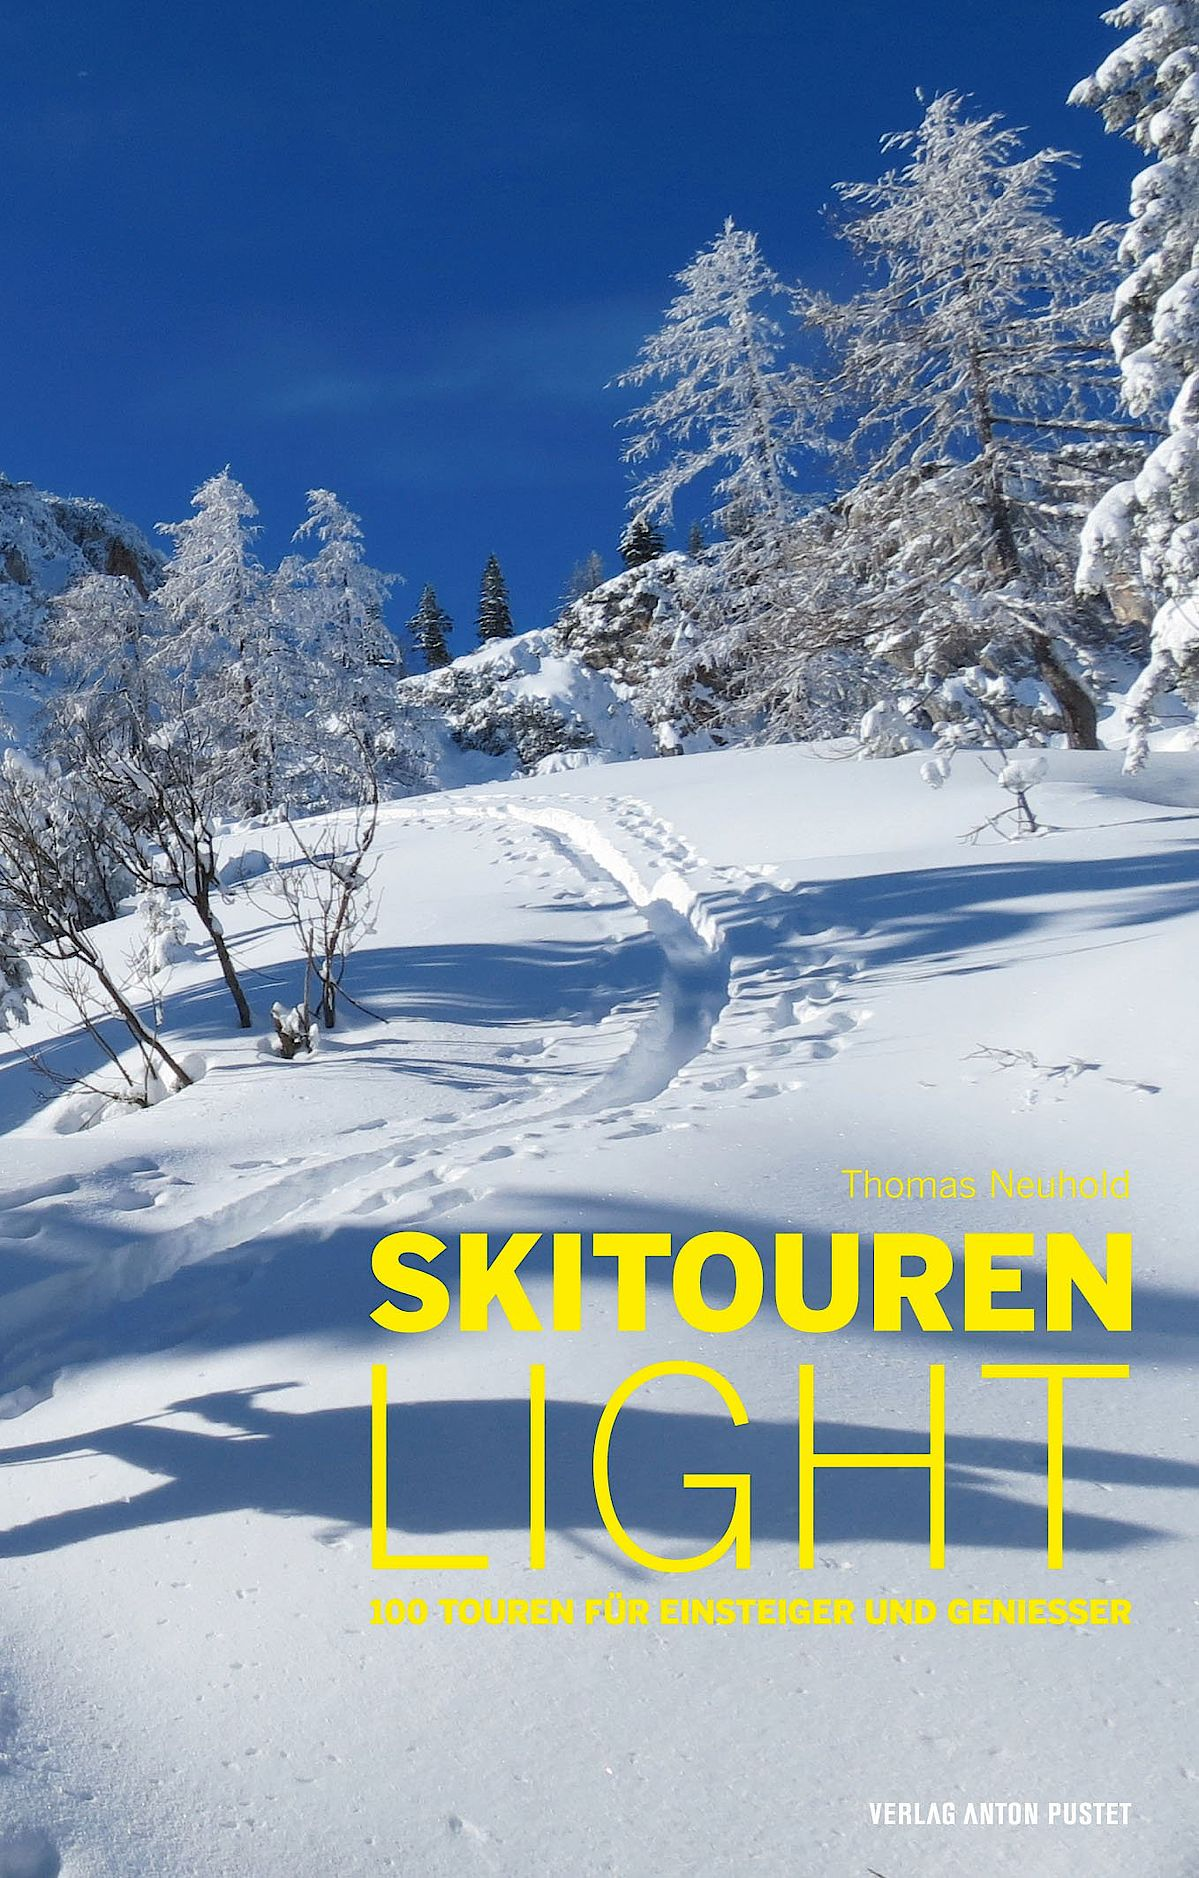 Skitouren light von Thomas Neuhold